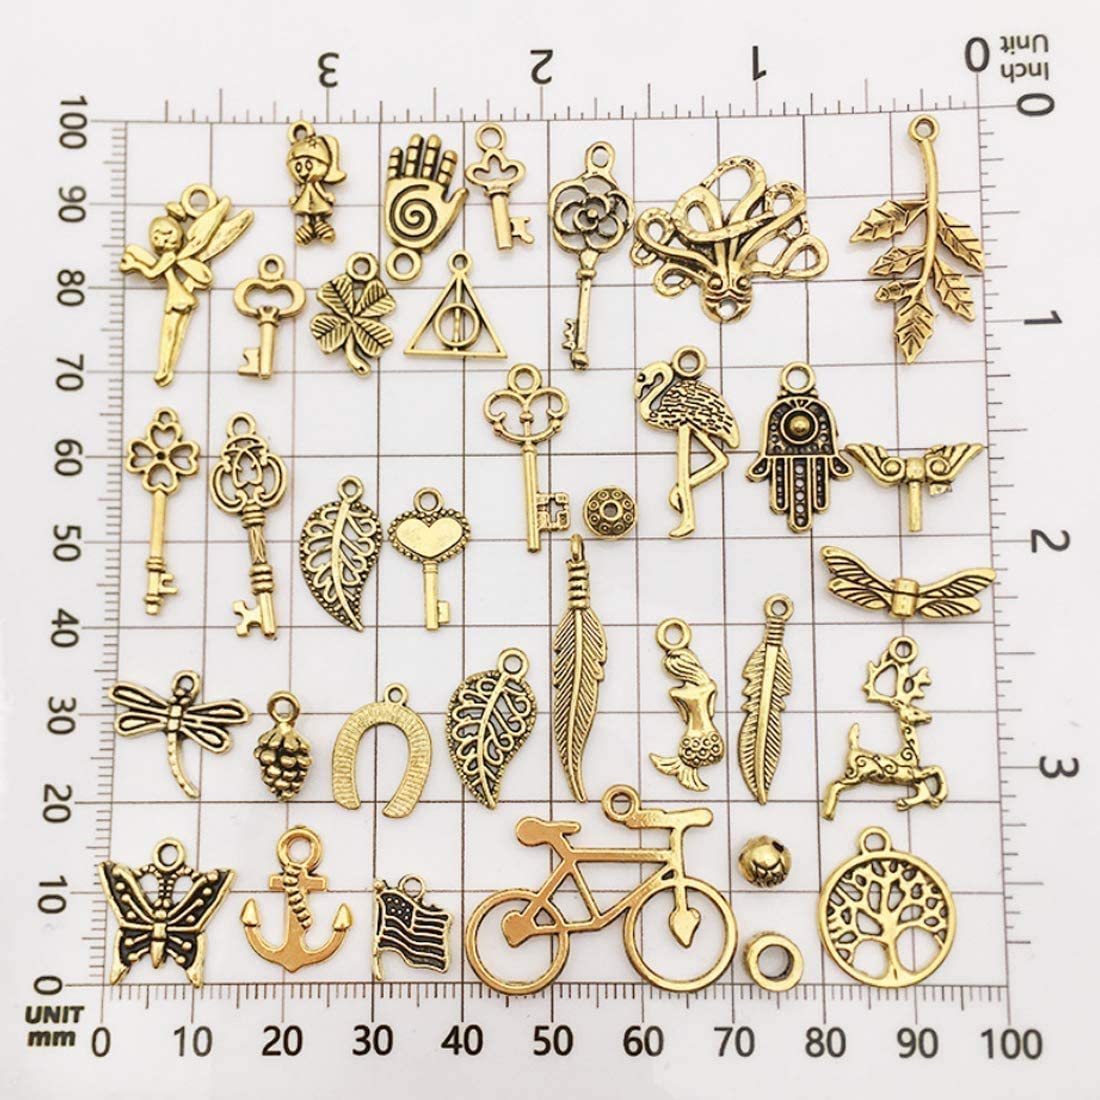 AleapDoll 200//300pcs Wholesale Bulk Charms for Jewelry Making Supplies Bracelet Charms Necklace Pendant Earring Tibetan Antique Gold Craft Supplies DIY Accessories